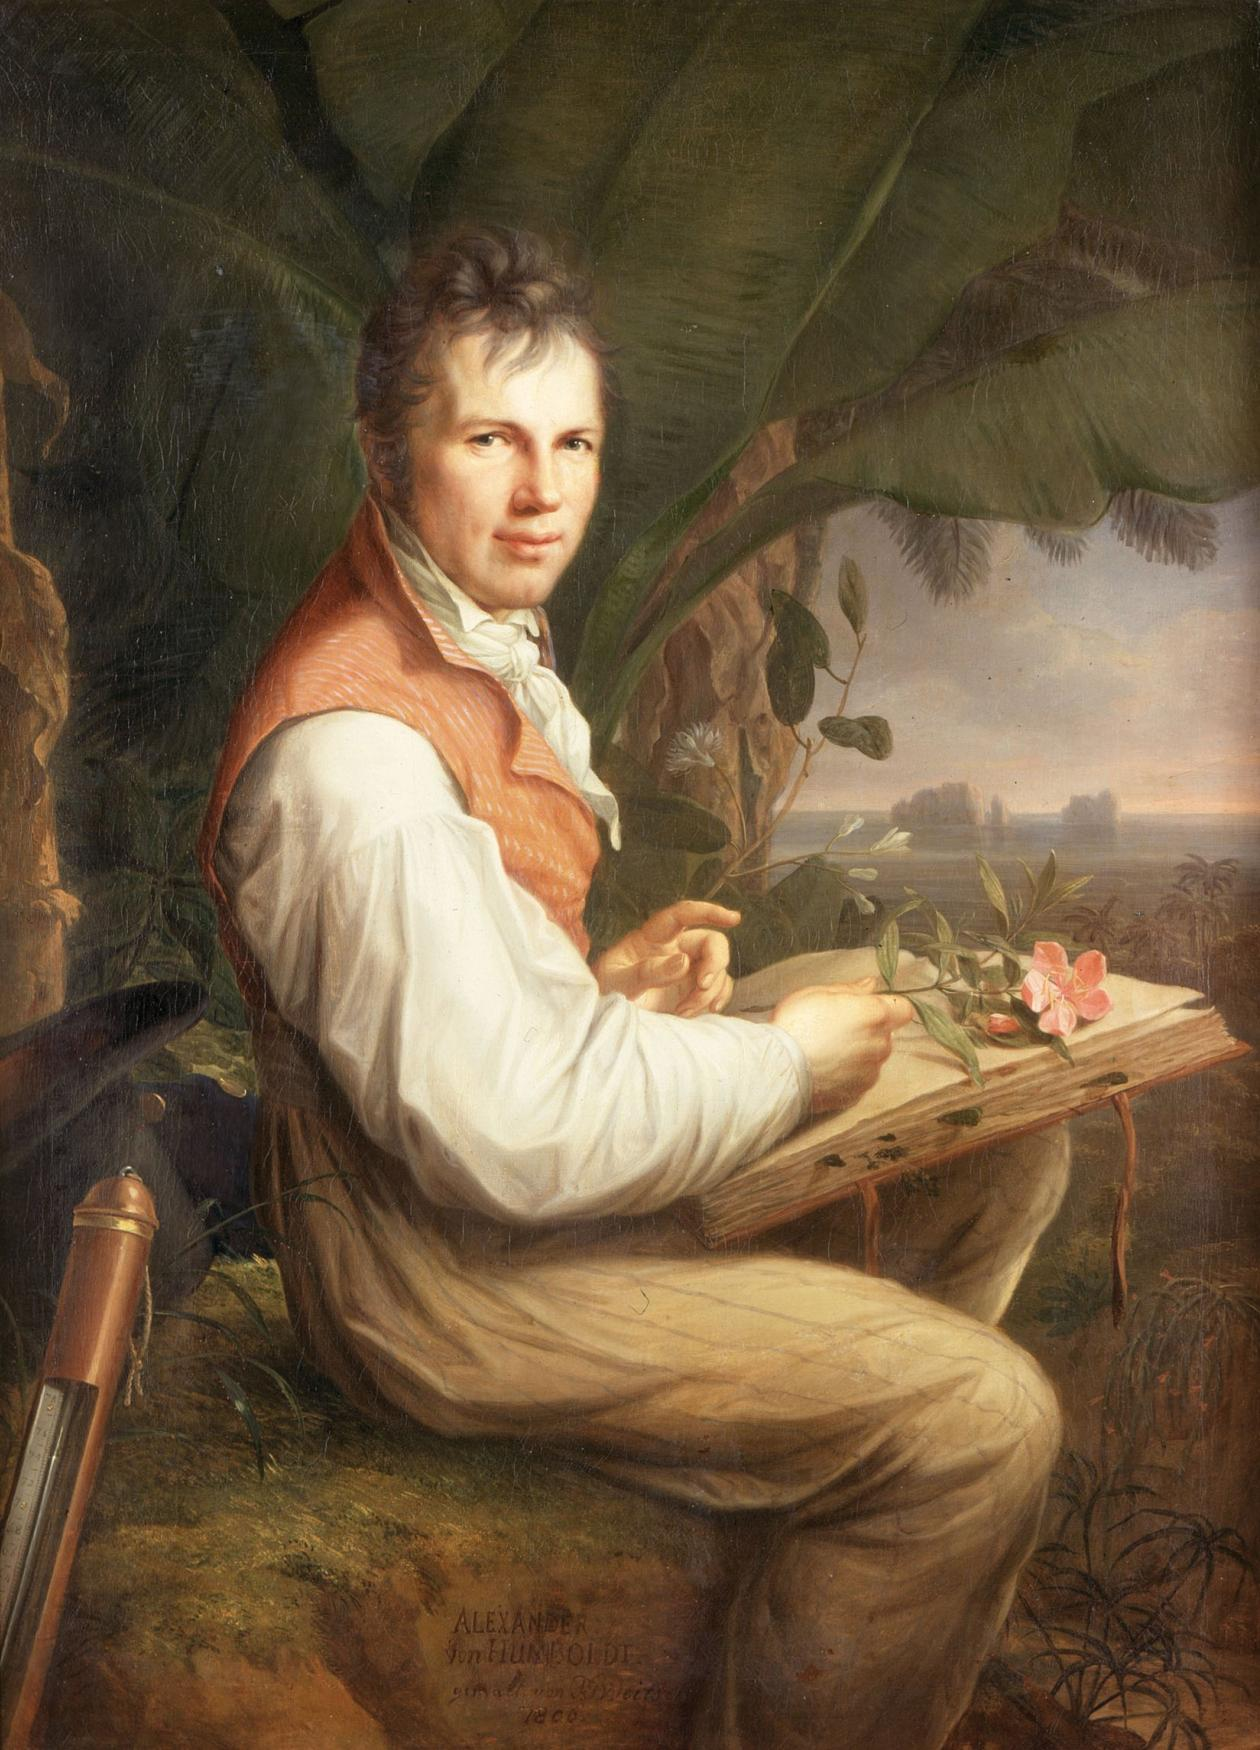 Painting of Alexander von Humboldt holding a large book with Venezuela's Orinoco river in the background.